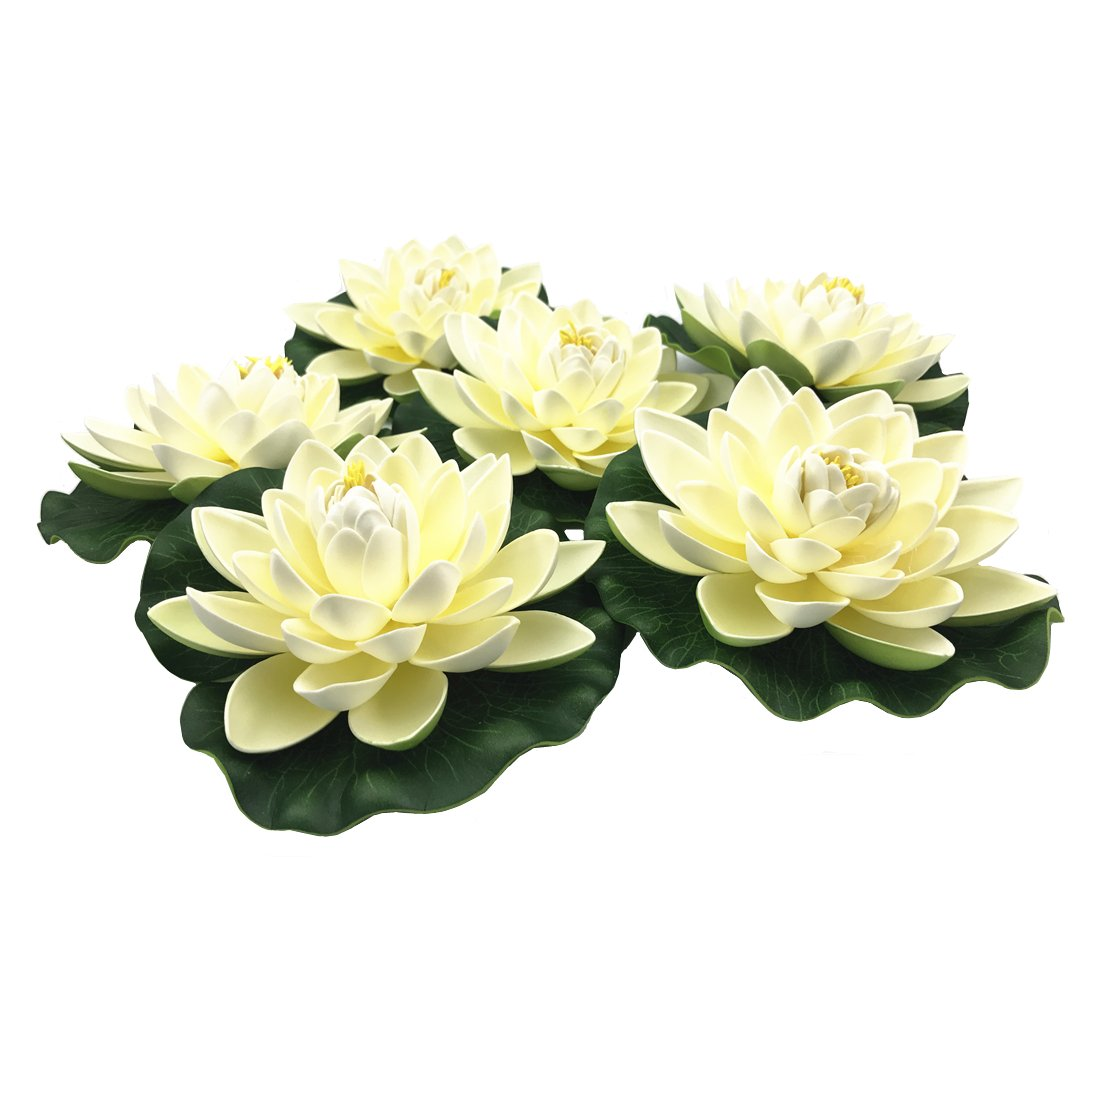 Best Artificial Lily Pads For Pond Amazon